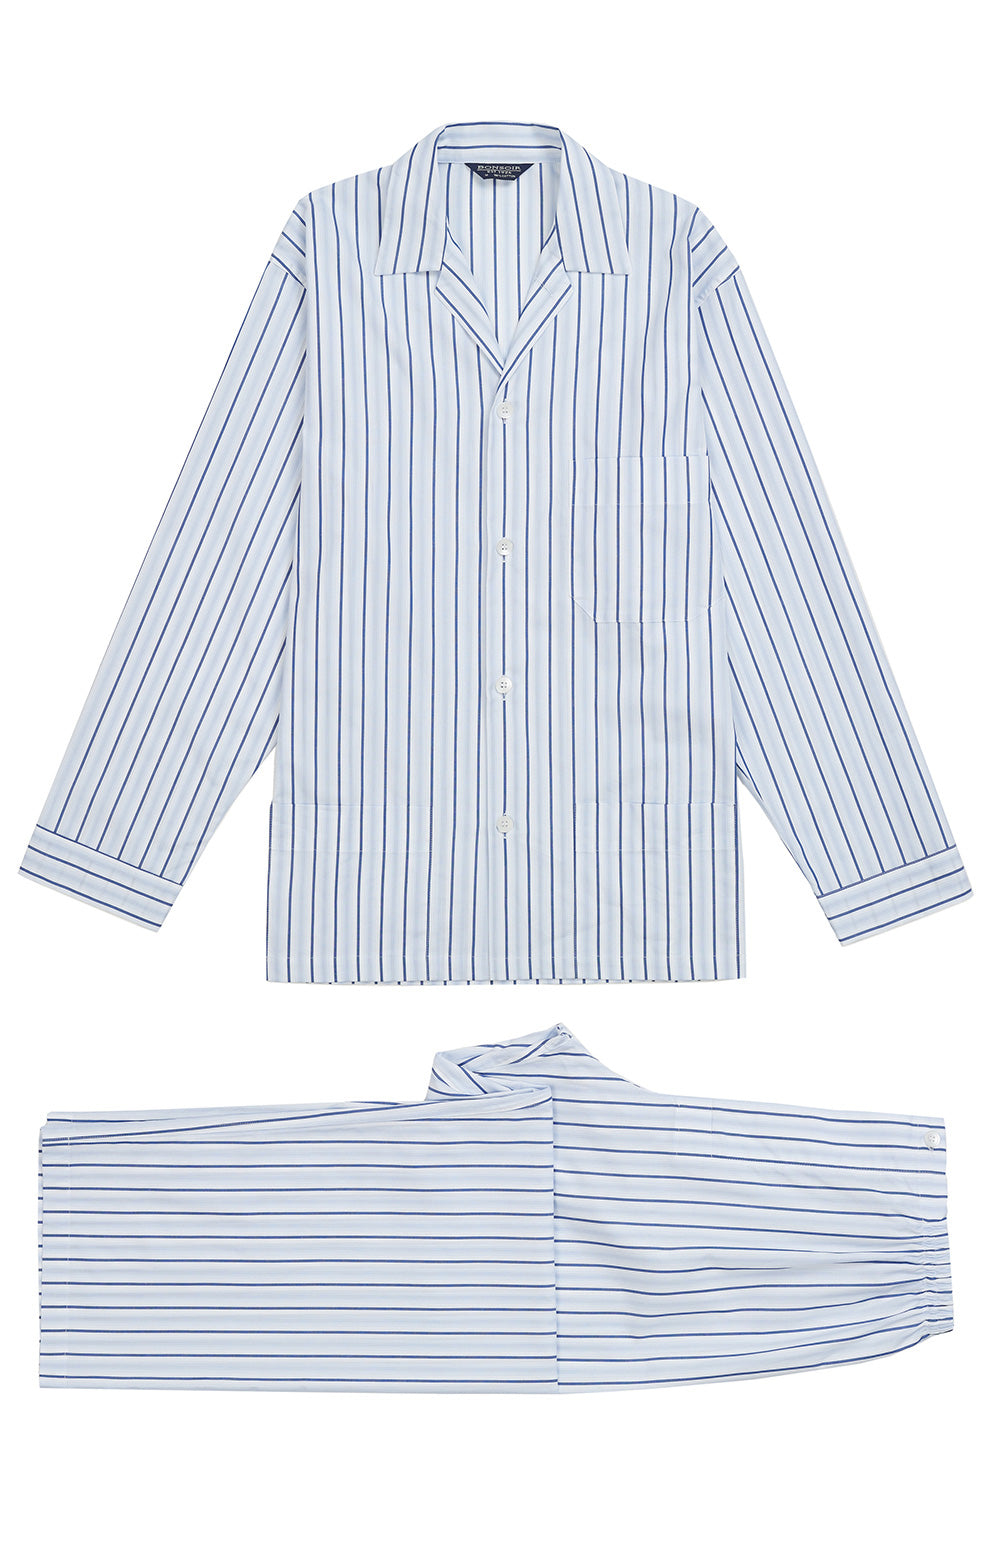 Men's Blue White Stripe Classic Cotton Pyjamas | Bonsoir of London